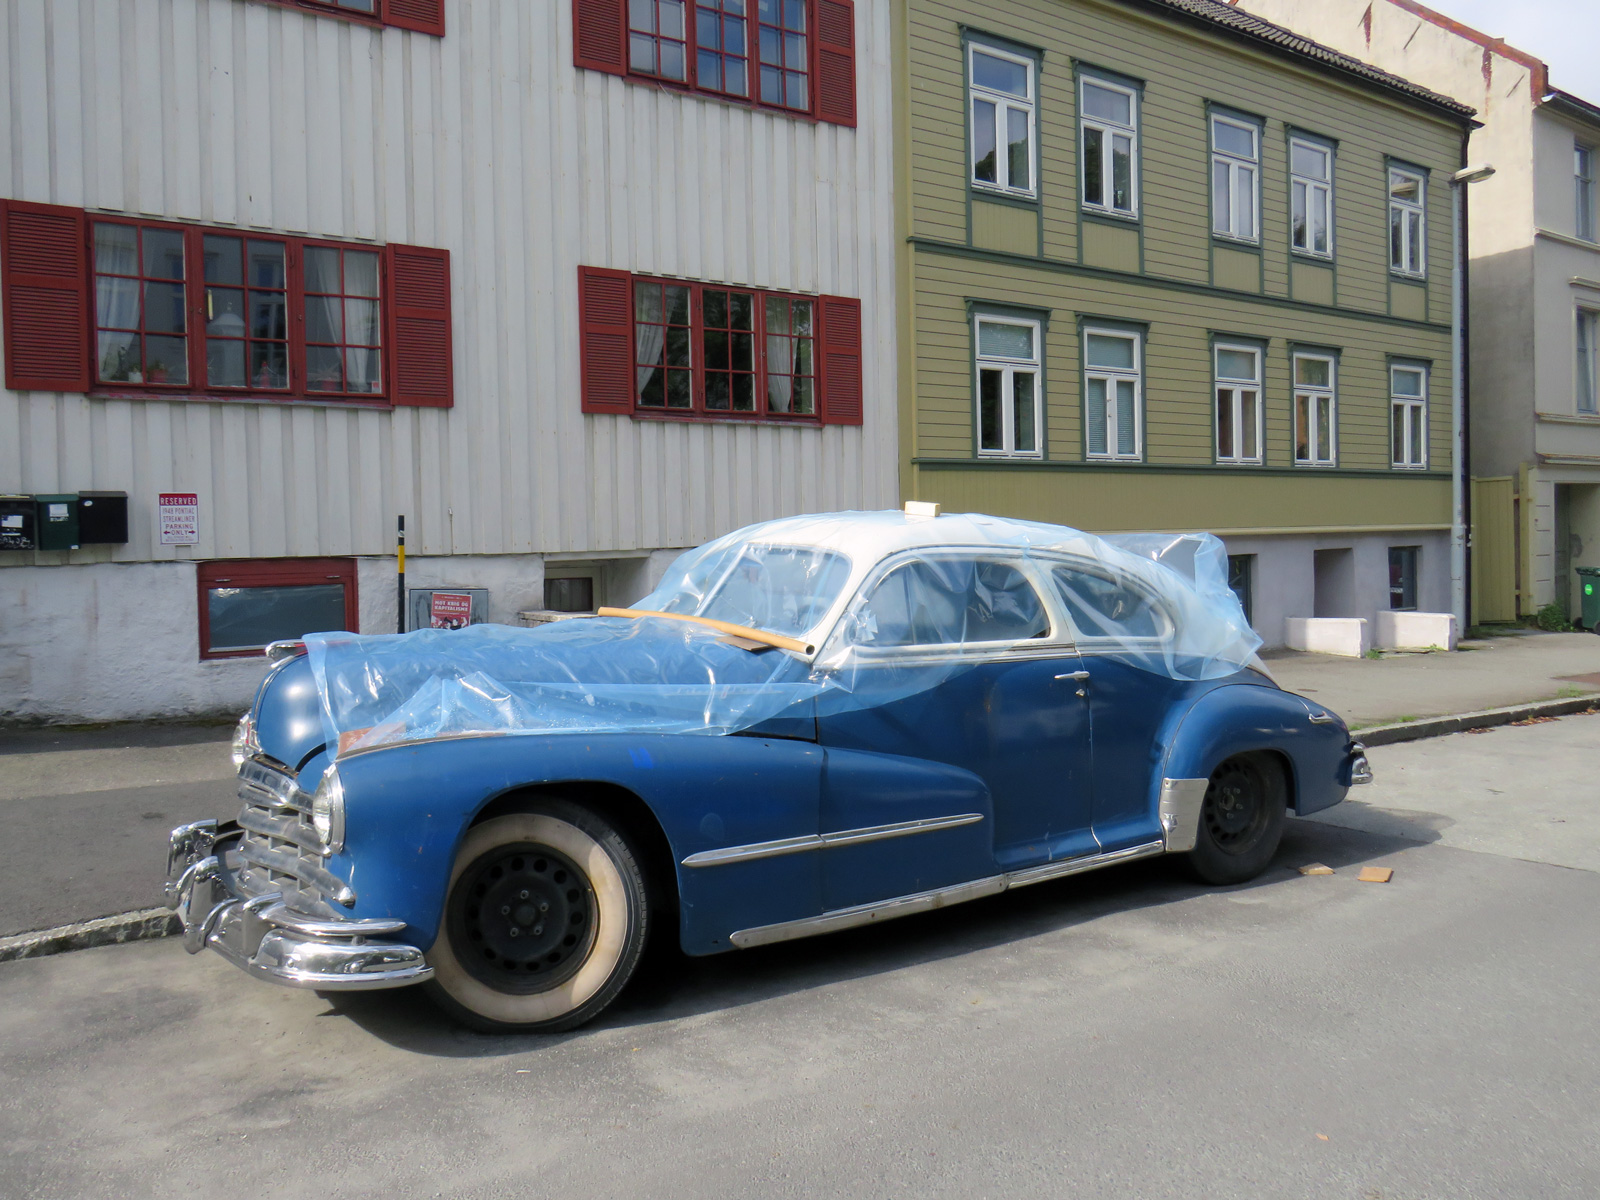 1948 Pontiac Deuxe Torpedo Eight Streamliner sedan coupe Trondheim Norway